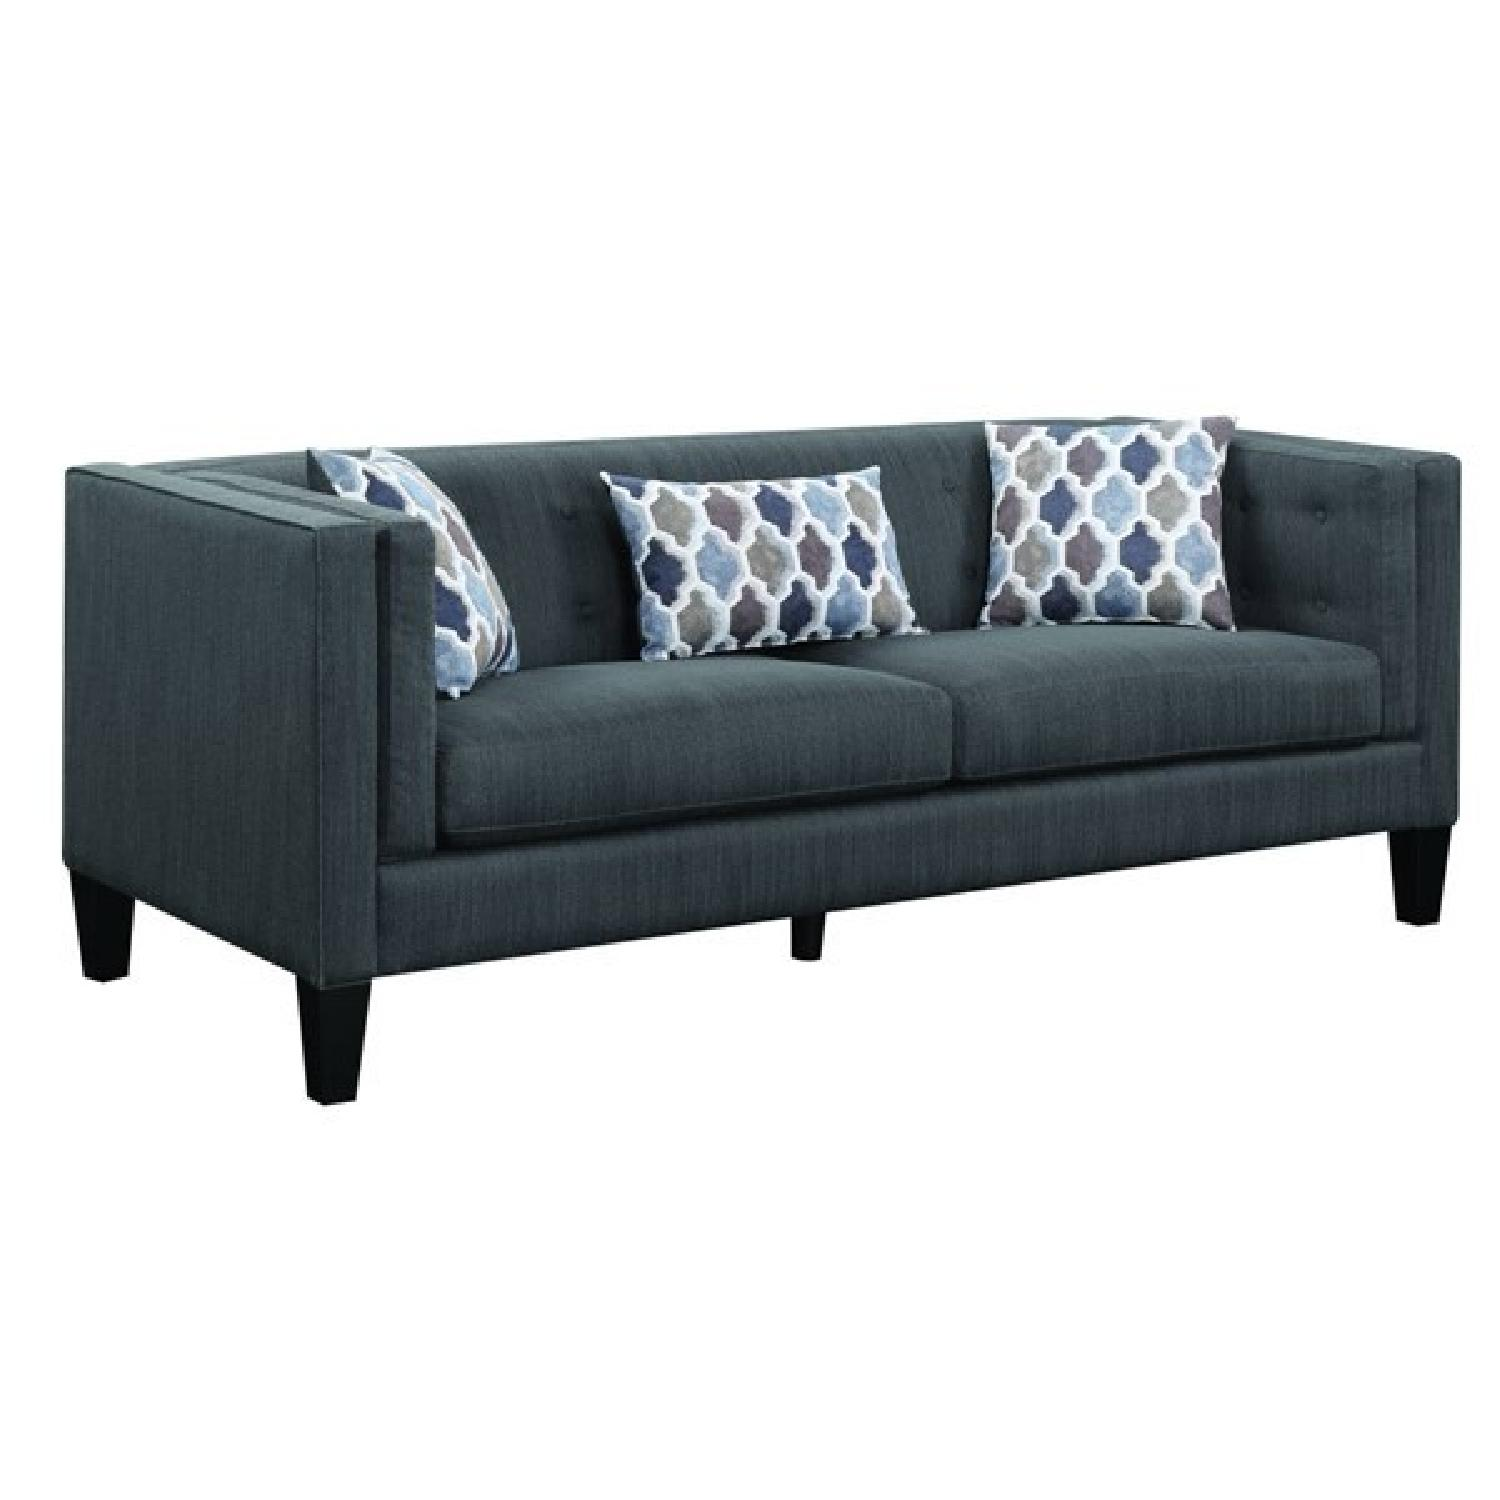 Modern Sofa in Dusty Blue Fabric w/ Double Pillow Arms